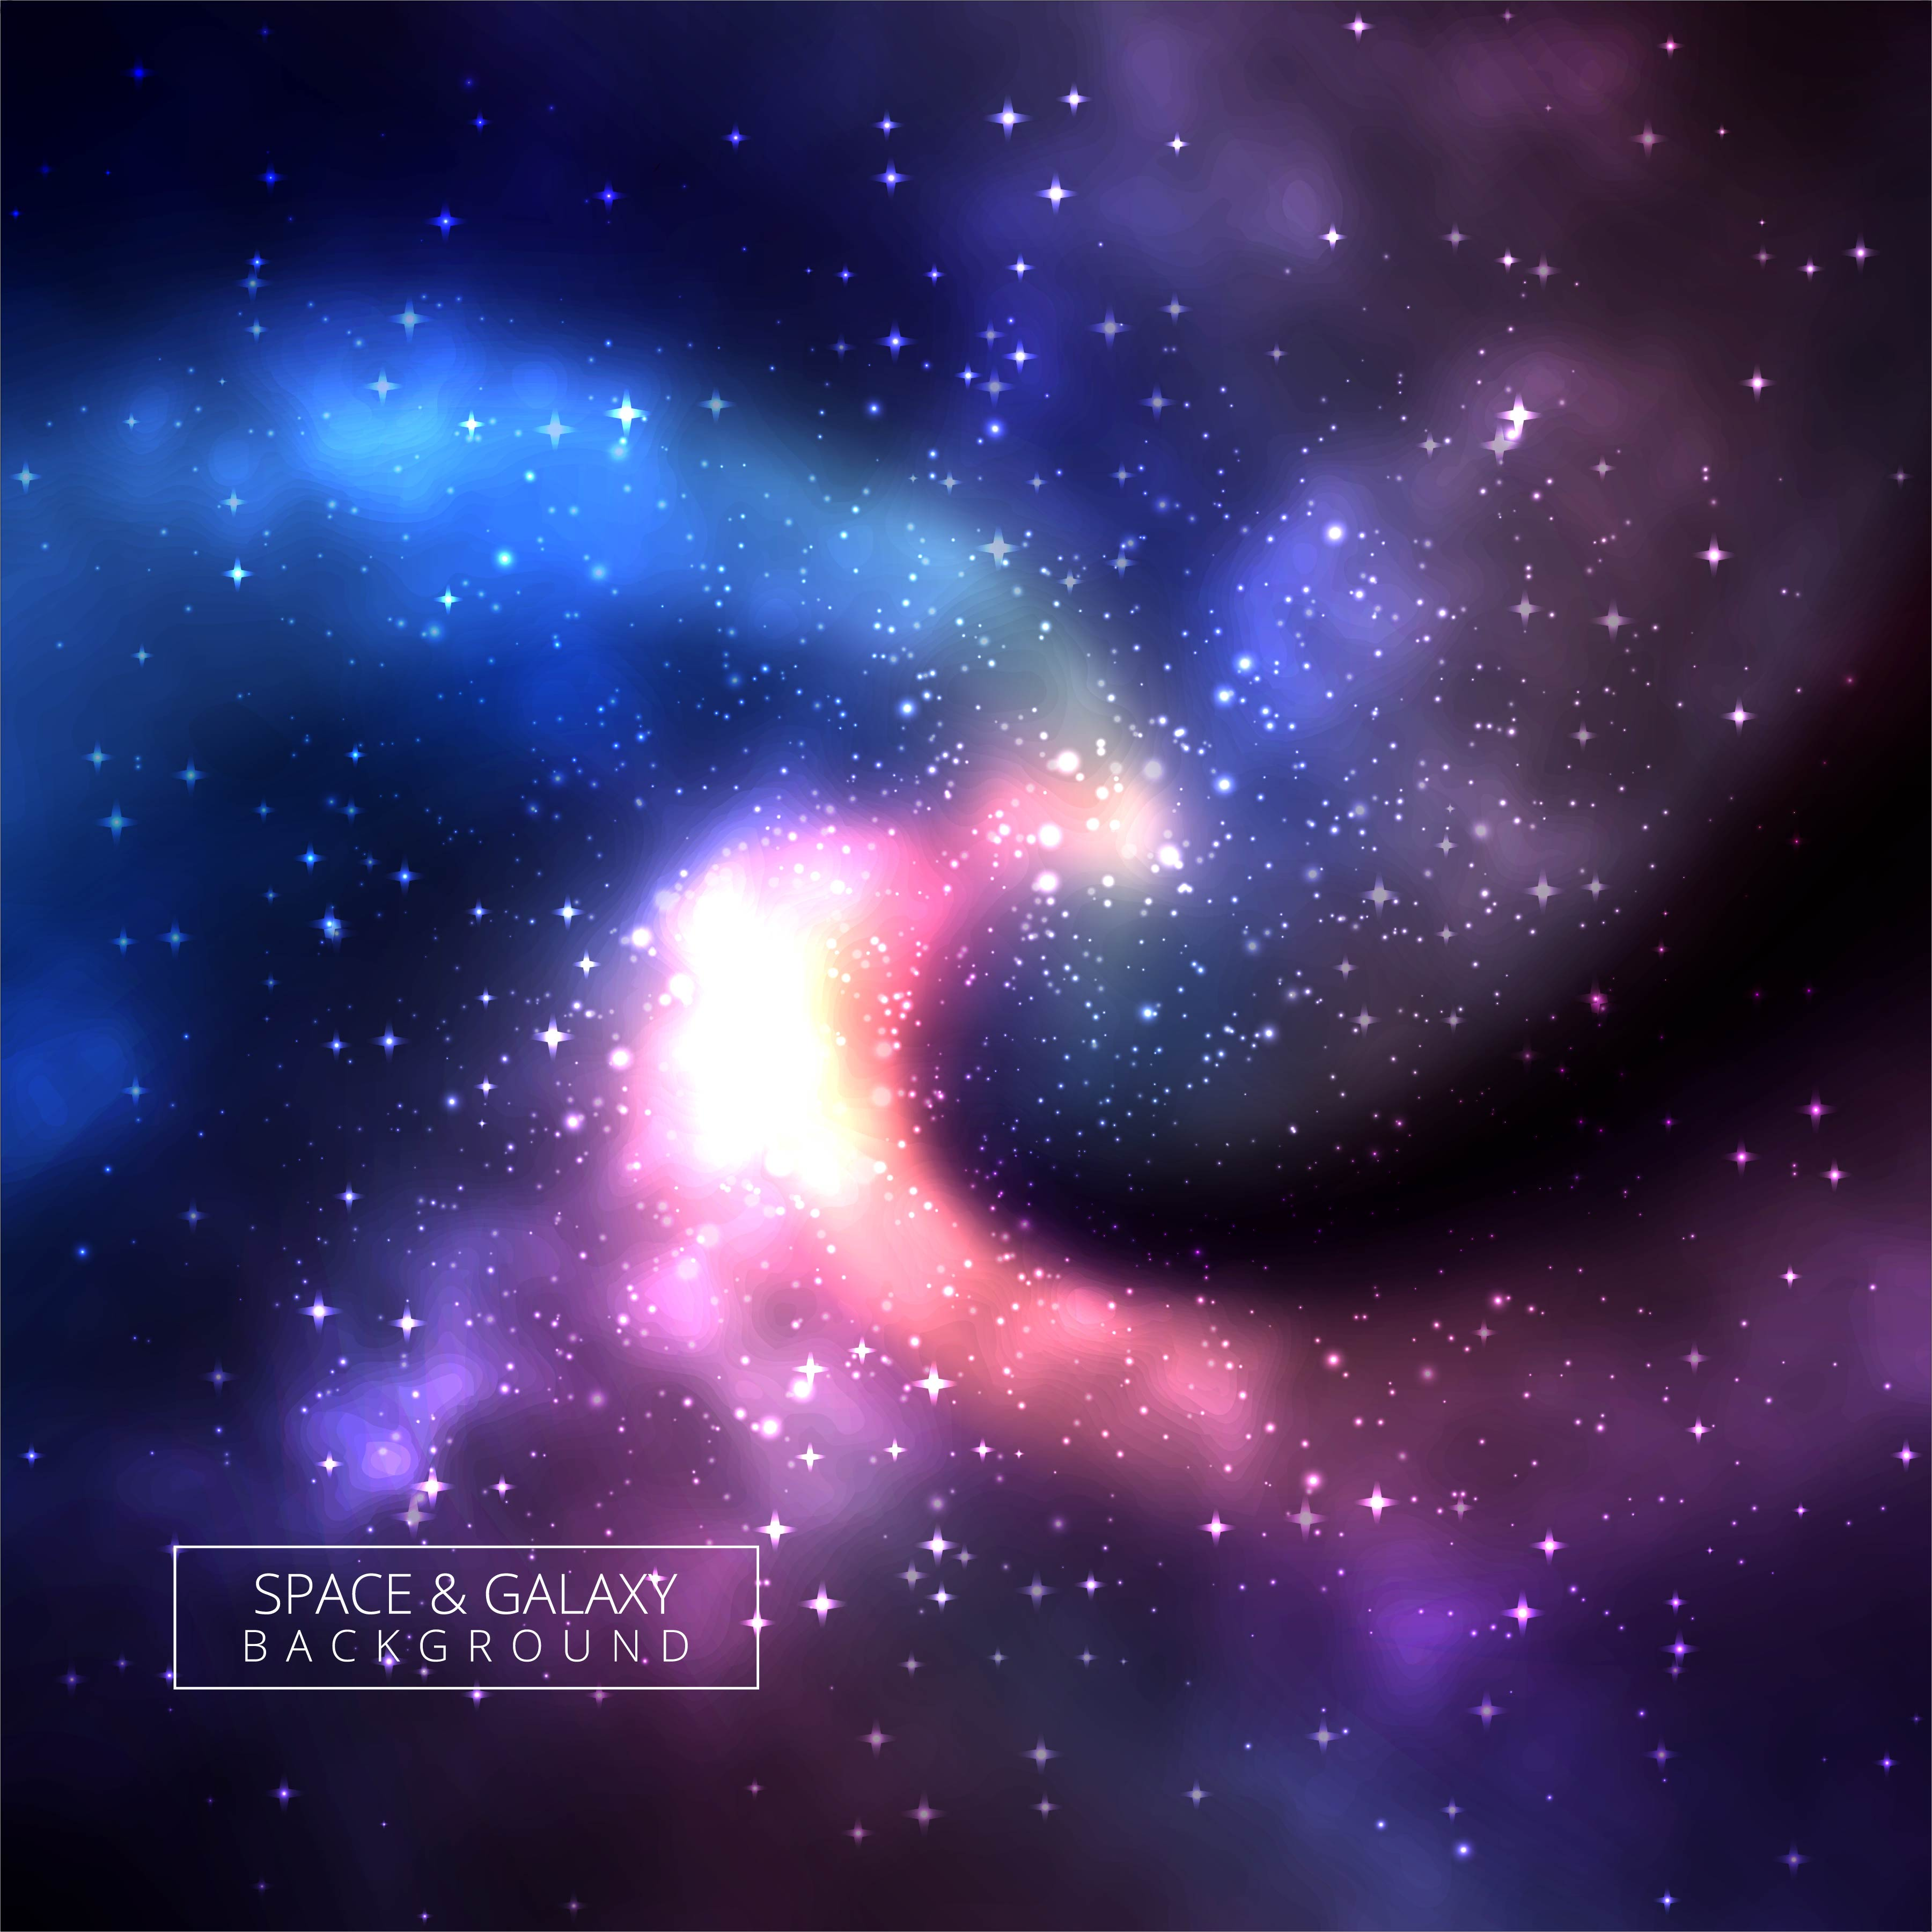 Abstract Flowers Logos: Universe Colorful Galaxy Background Illustration